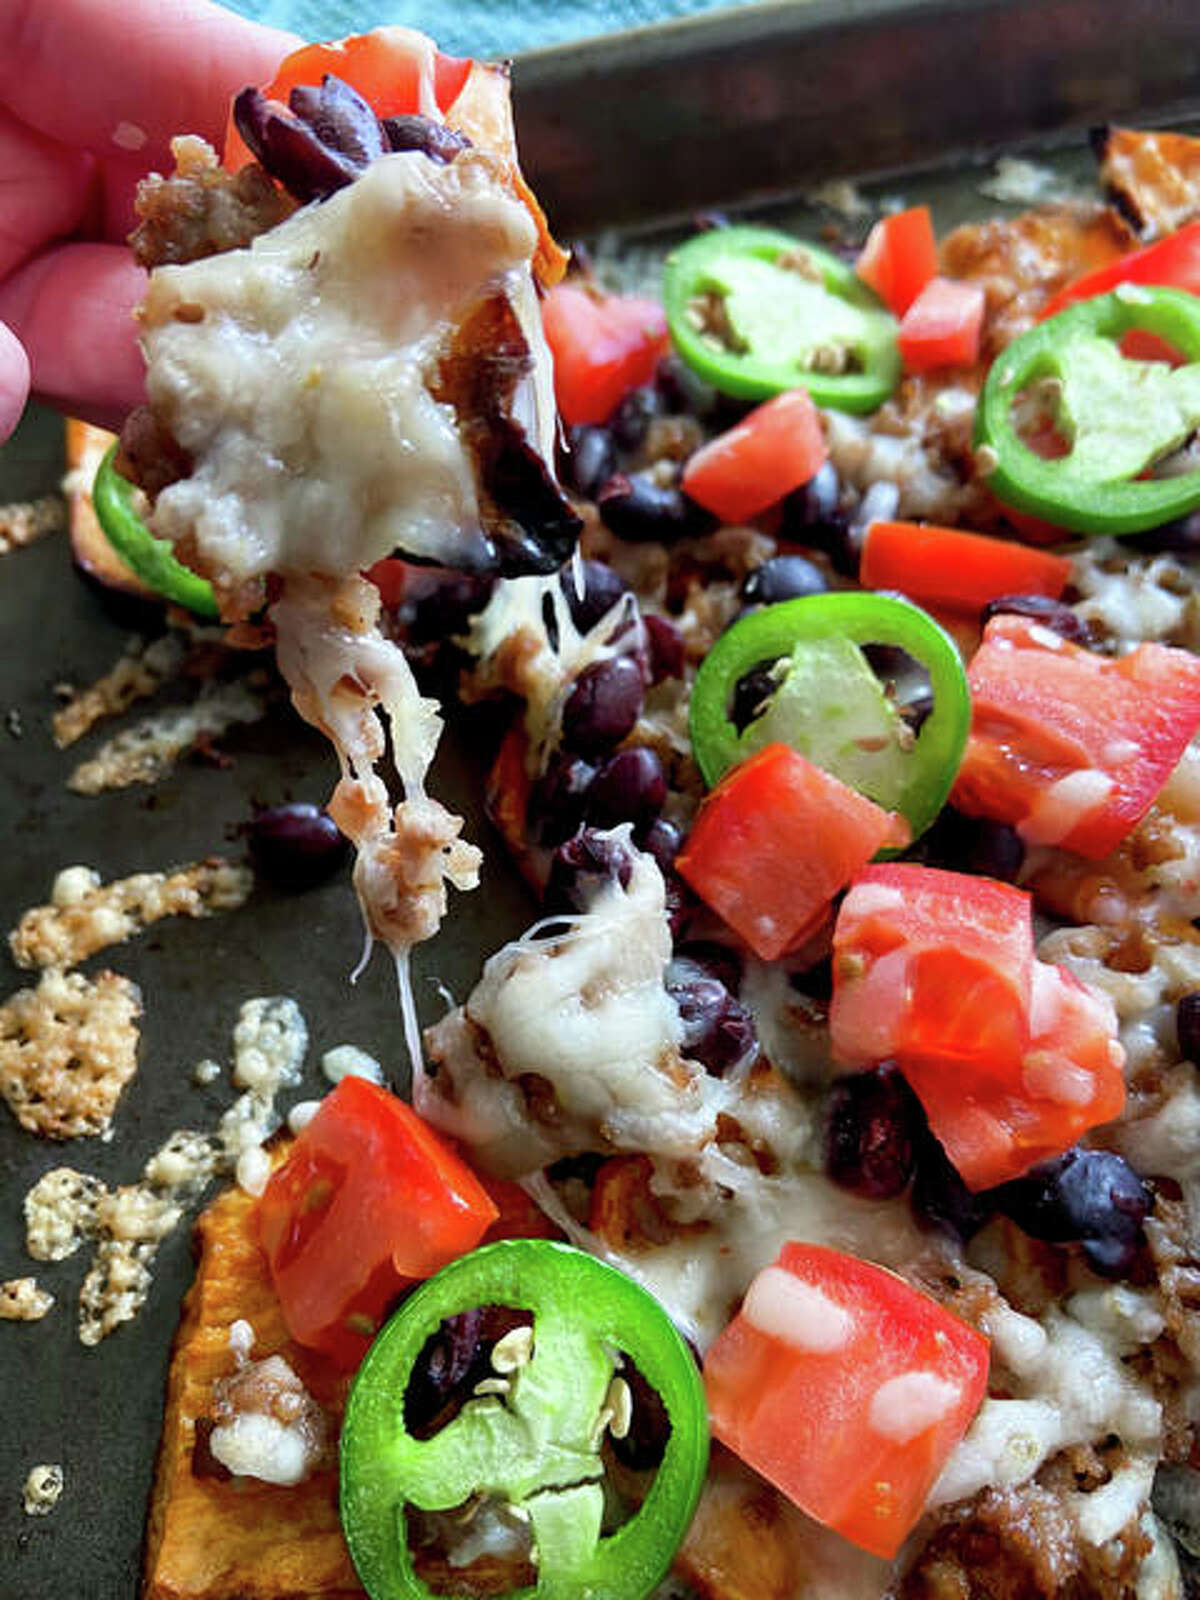 Sweet potato nachos put a healthy twist on the beloved dish, featuring roasted vegetables, black beans, meat, cheese and more.